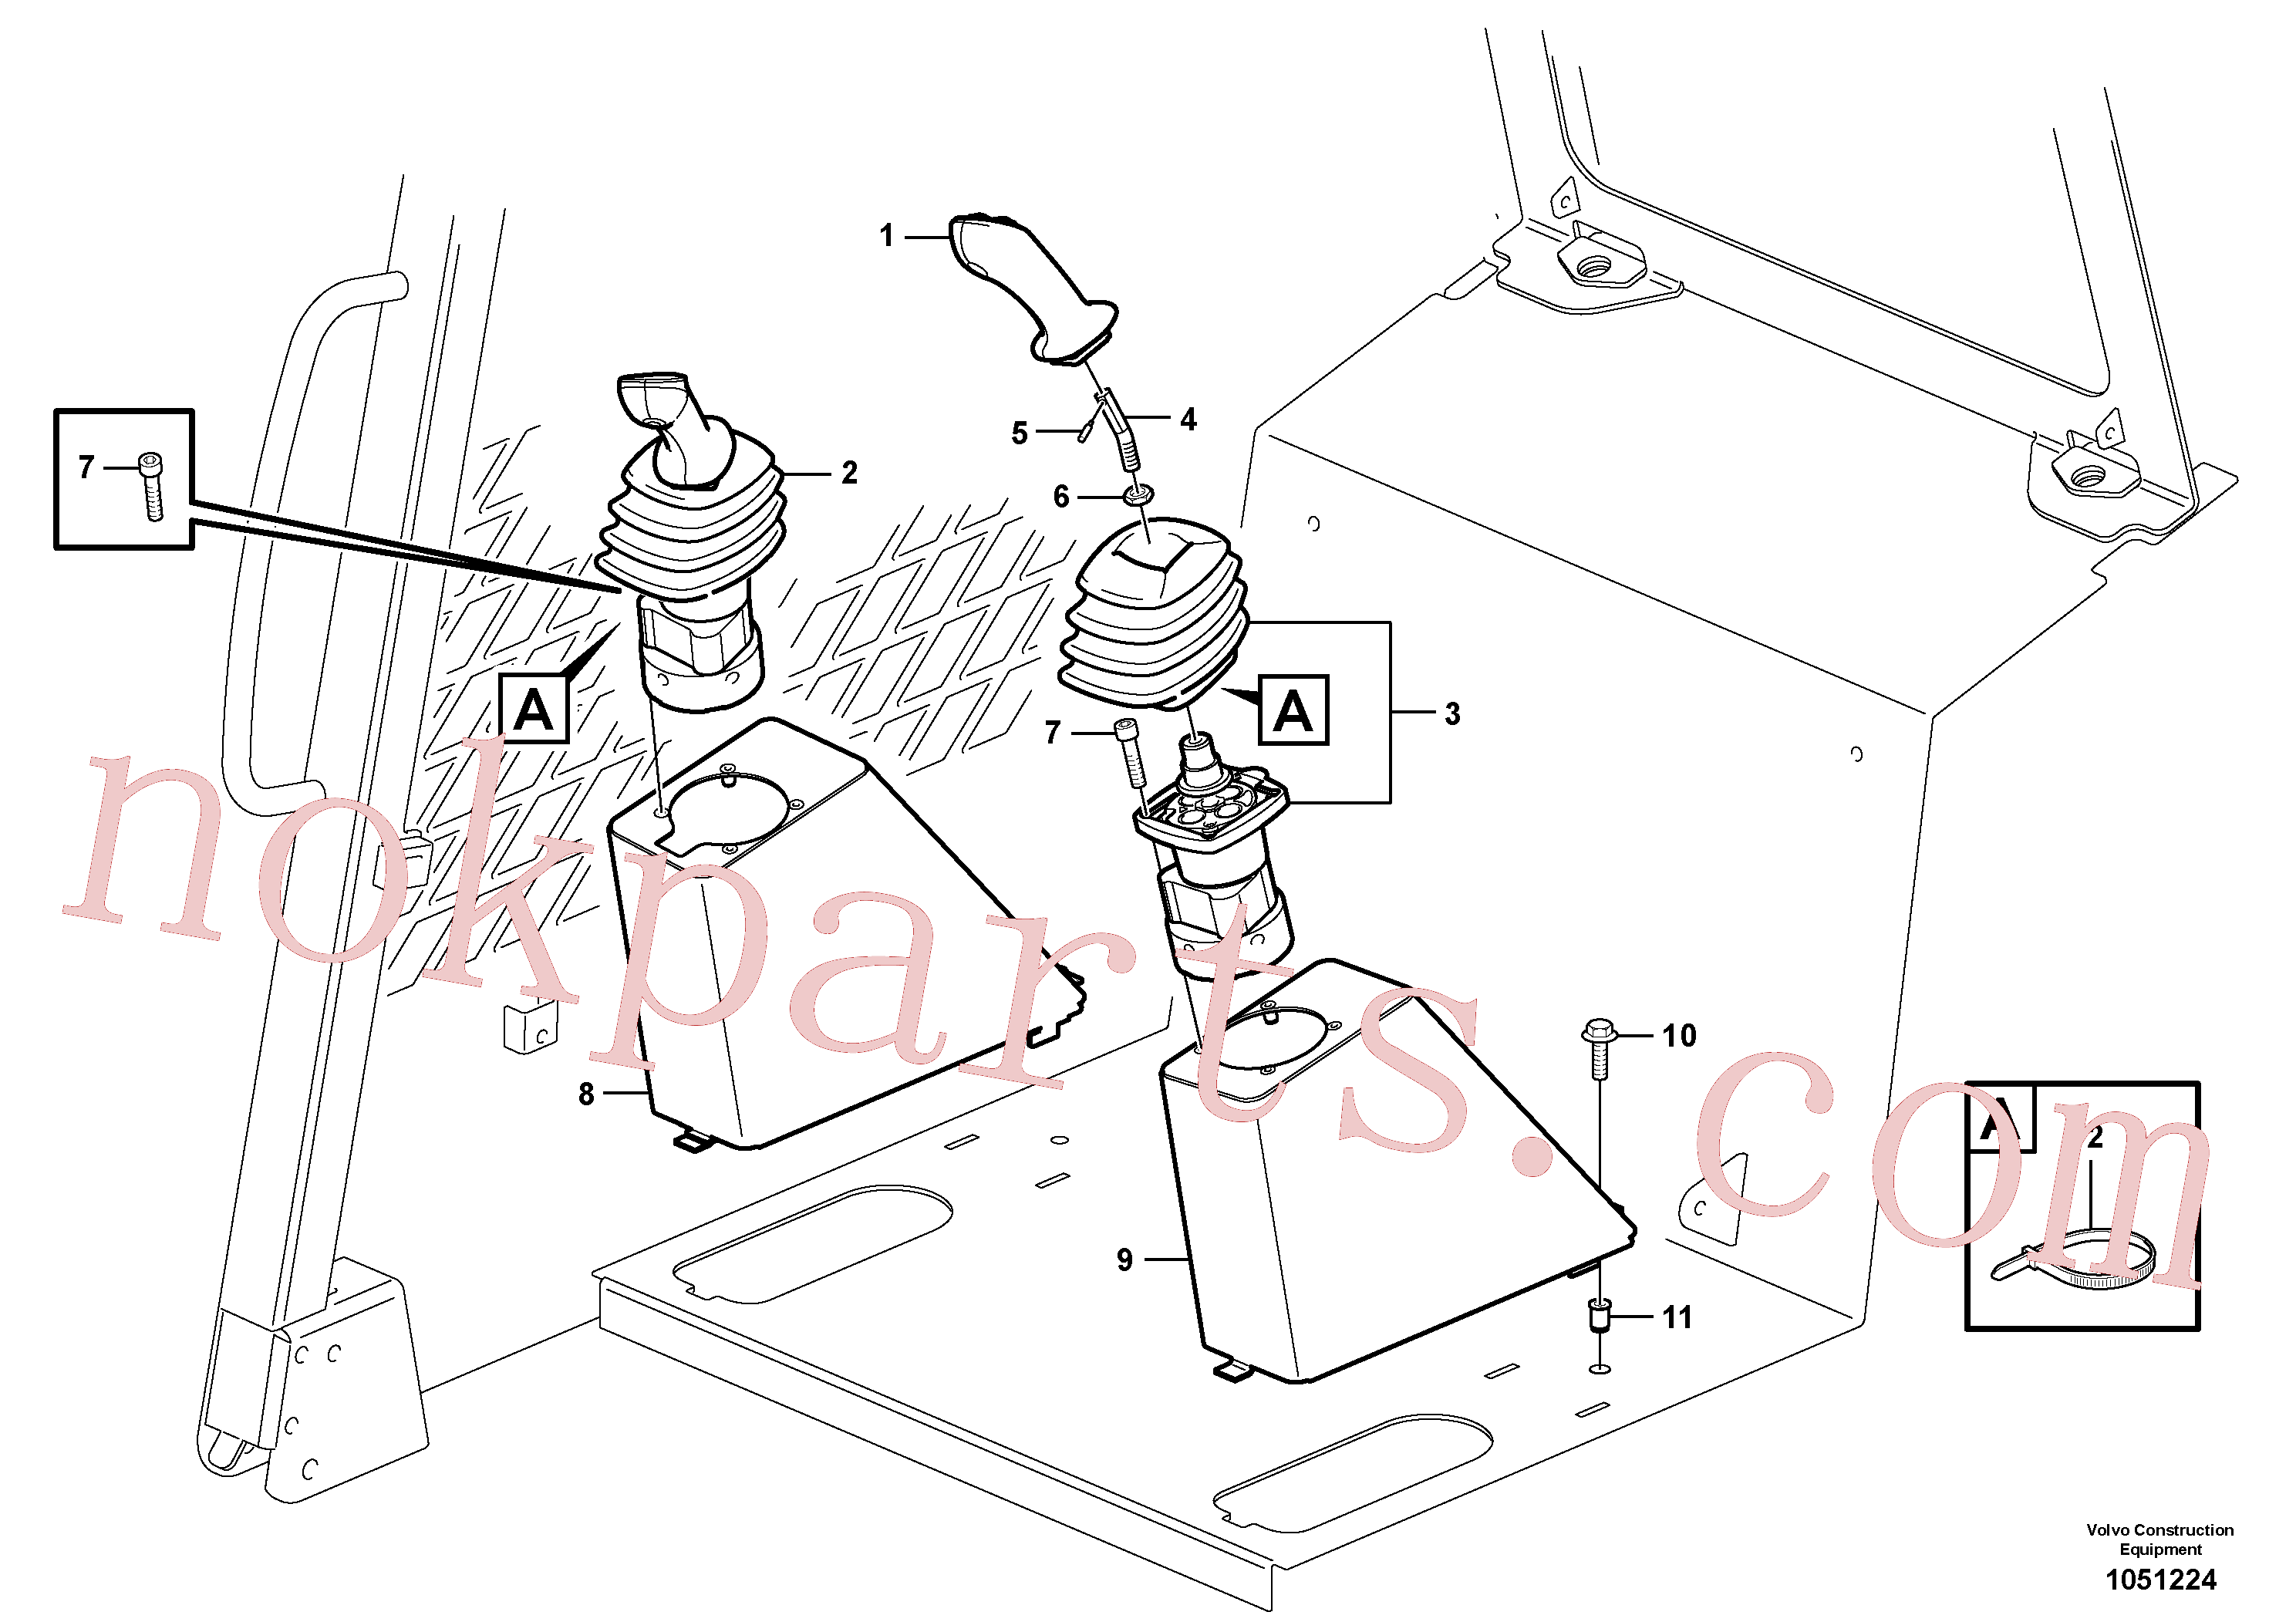 VOE15099104 for Volvo Optional hand controls(1051224 assembly)